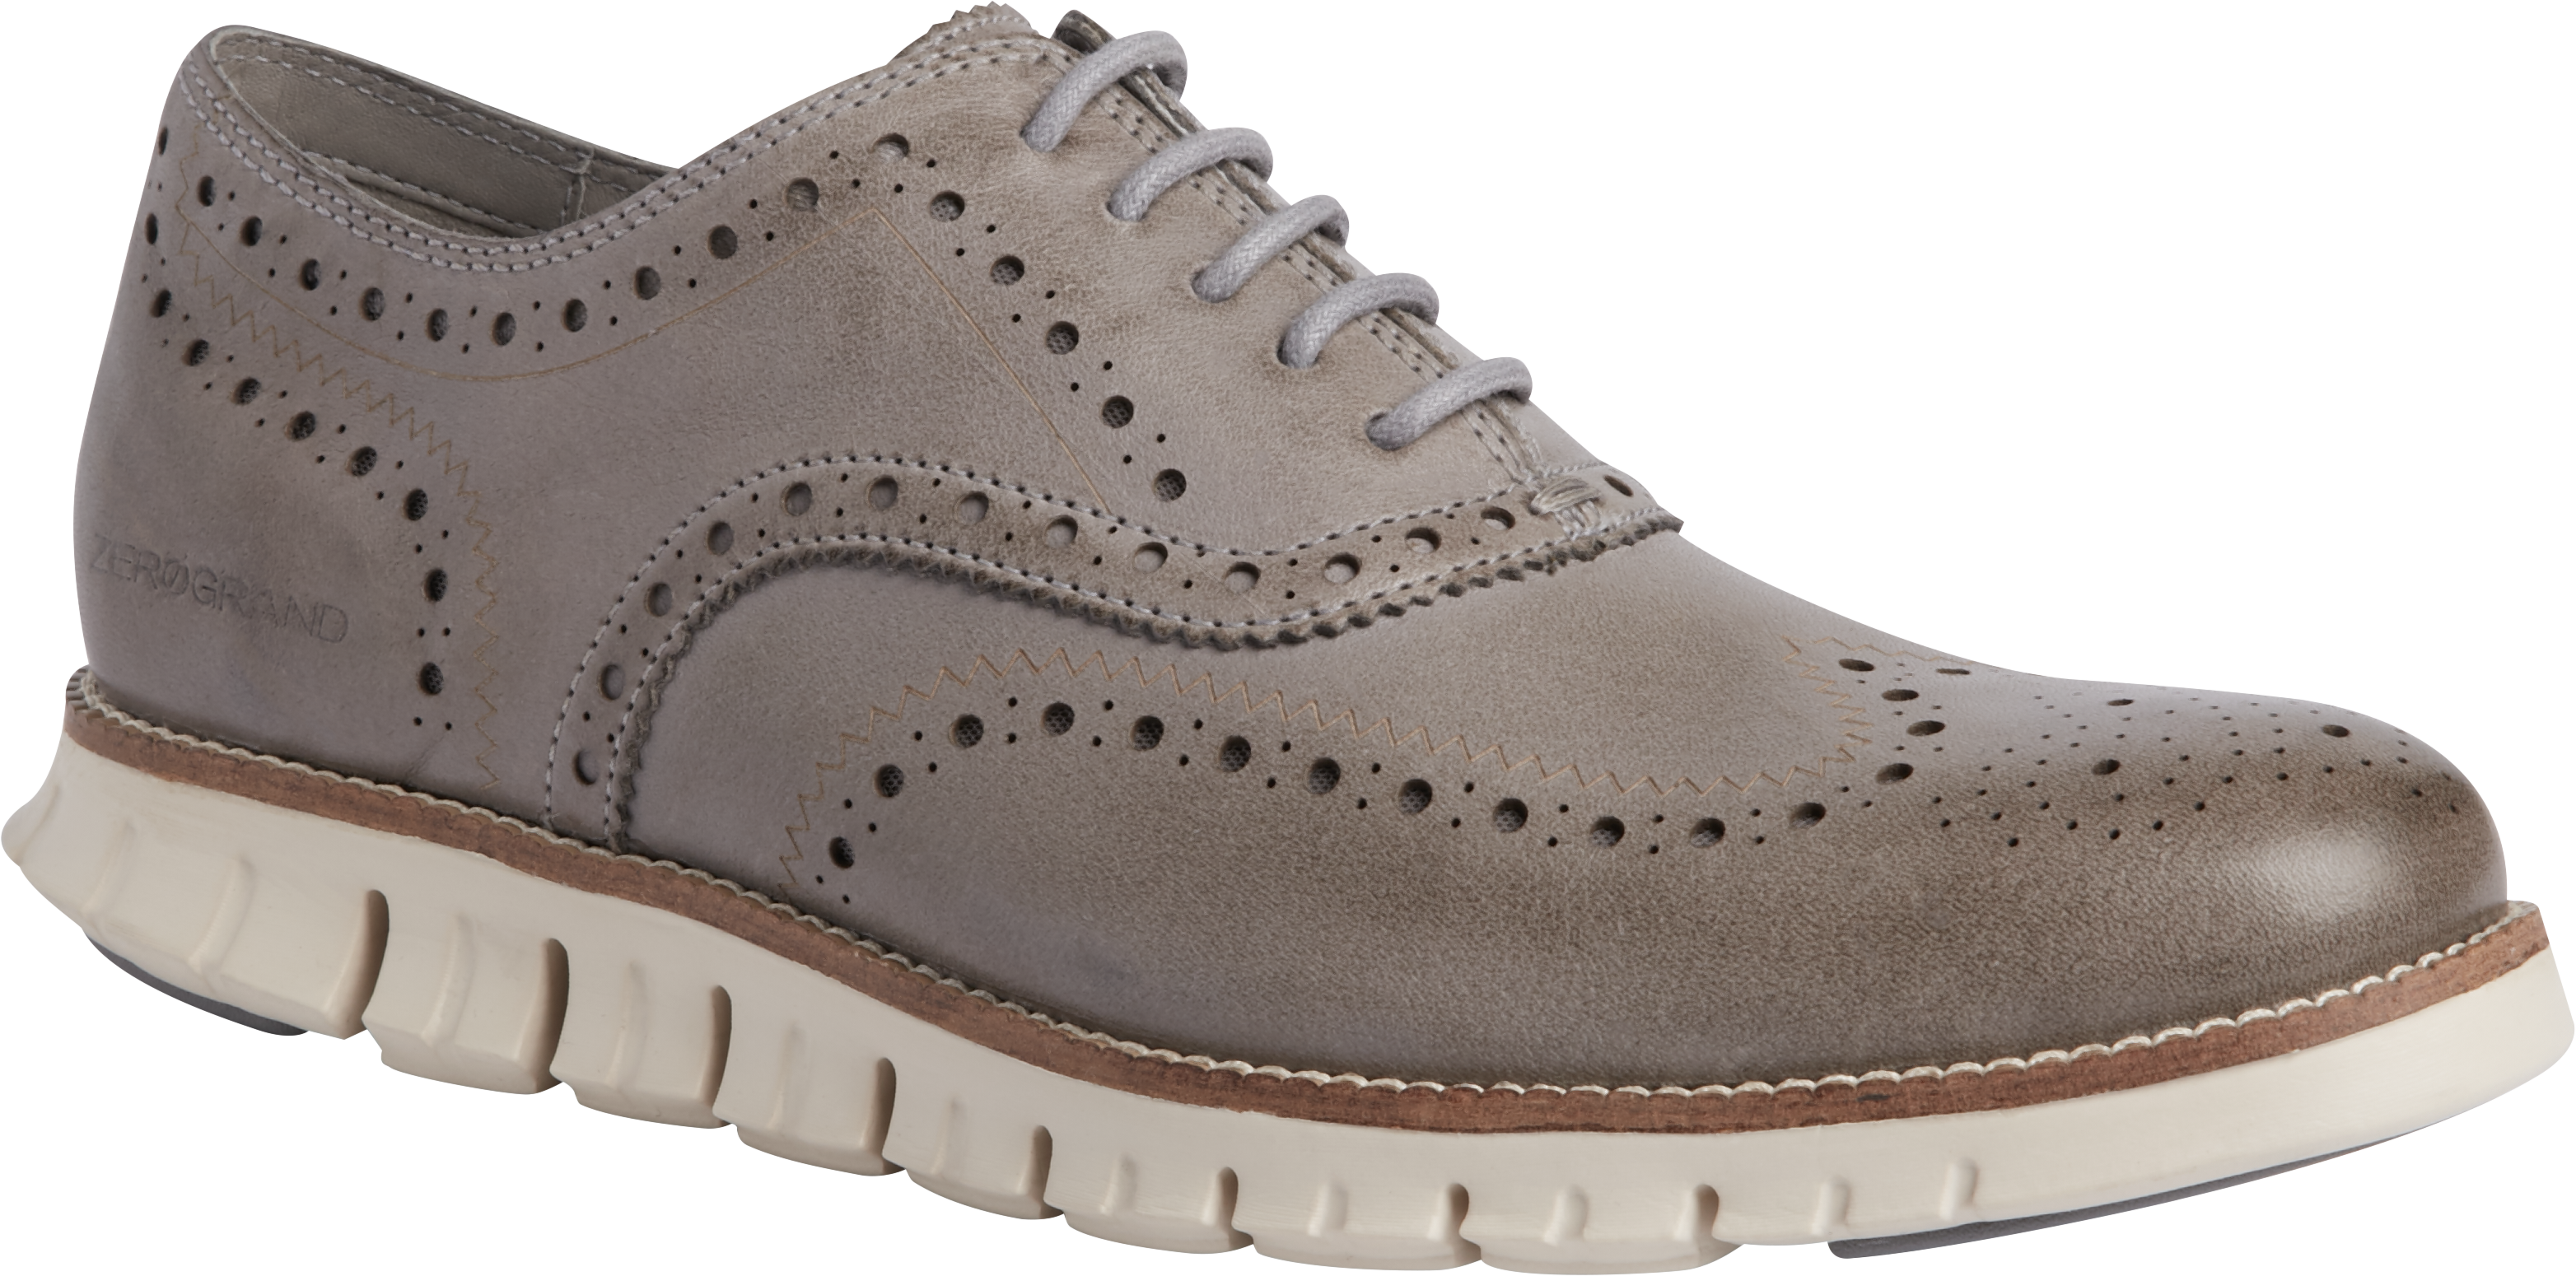 3a717087b8 Cole Haan Zerogrand Wingtip Lace Up - Cole Haan   Jos A Bank